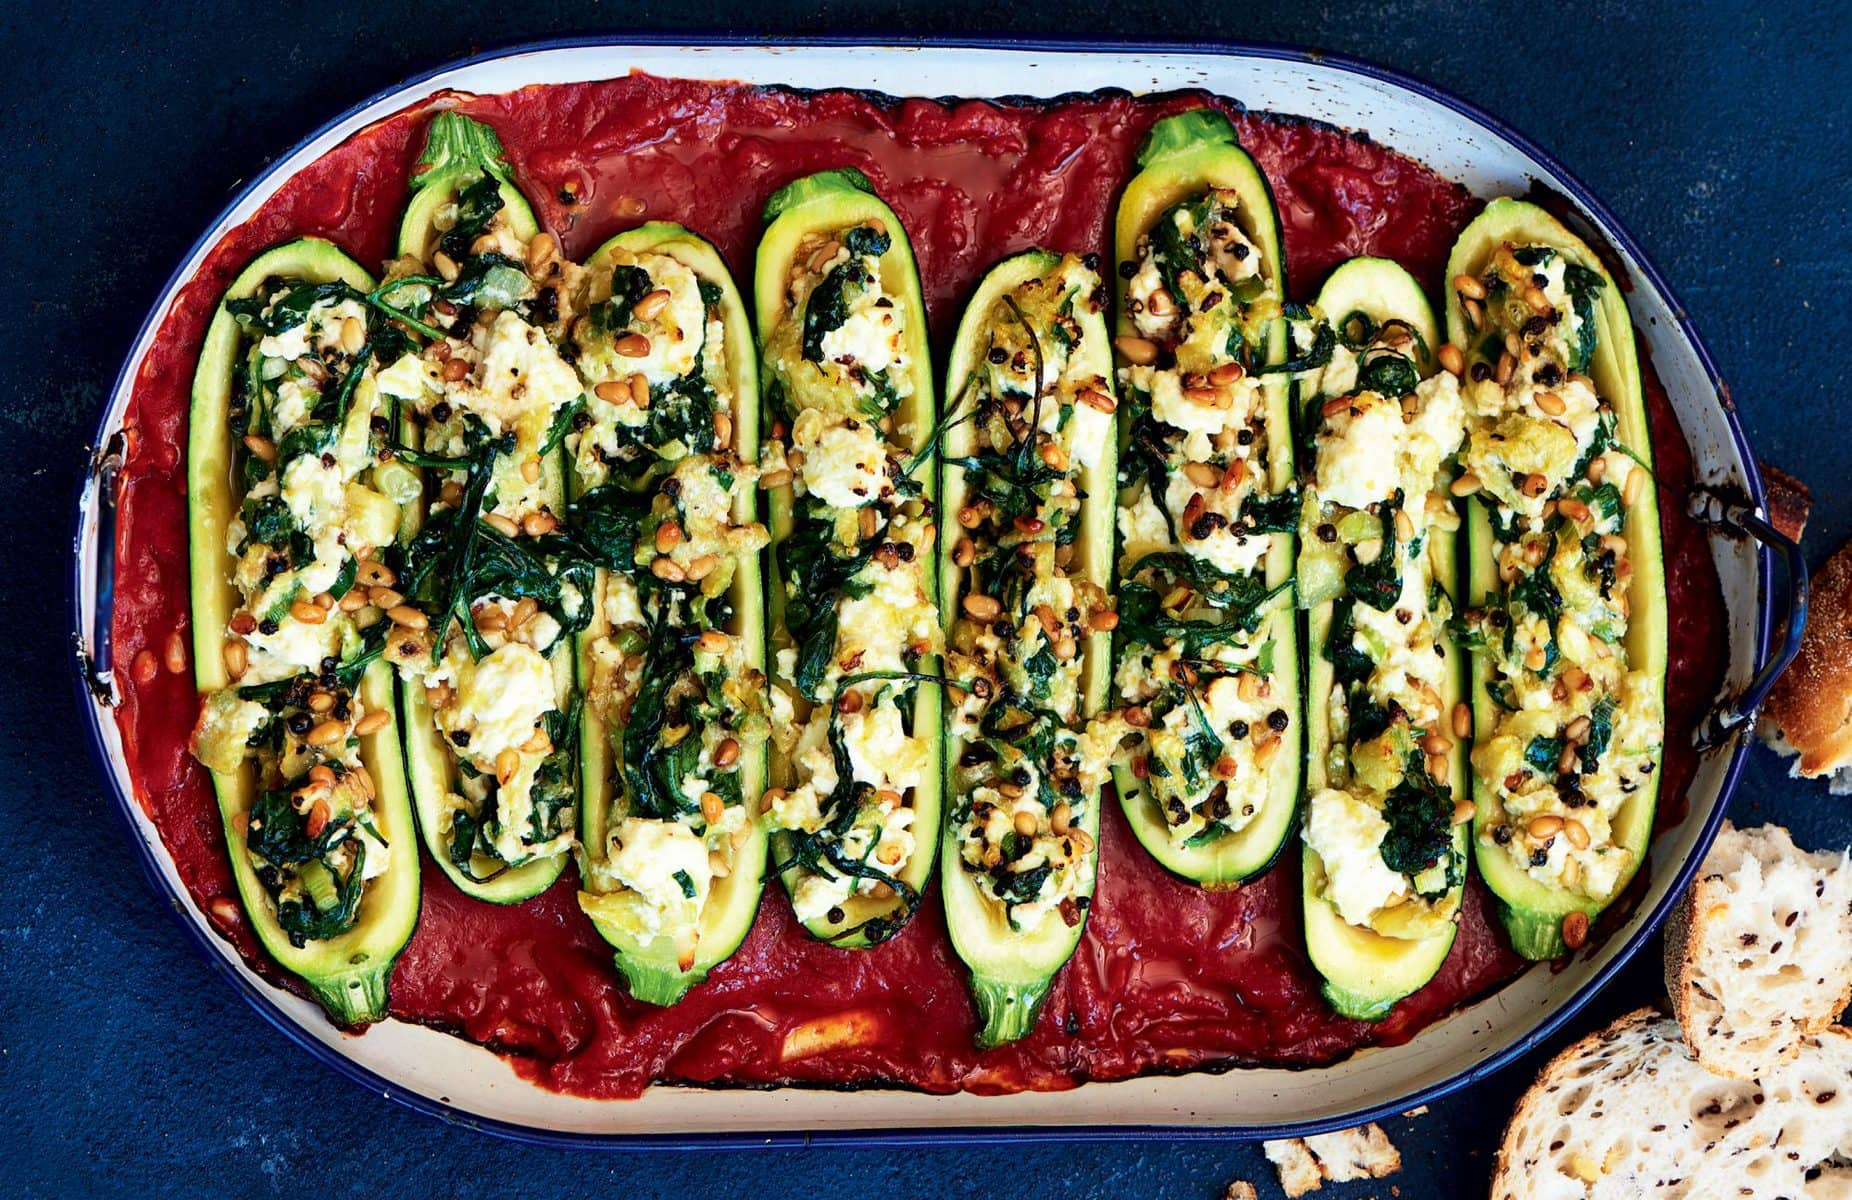 Spinach, pine nut and ricotta stuffed courgette bake